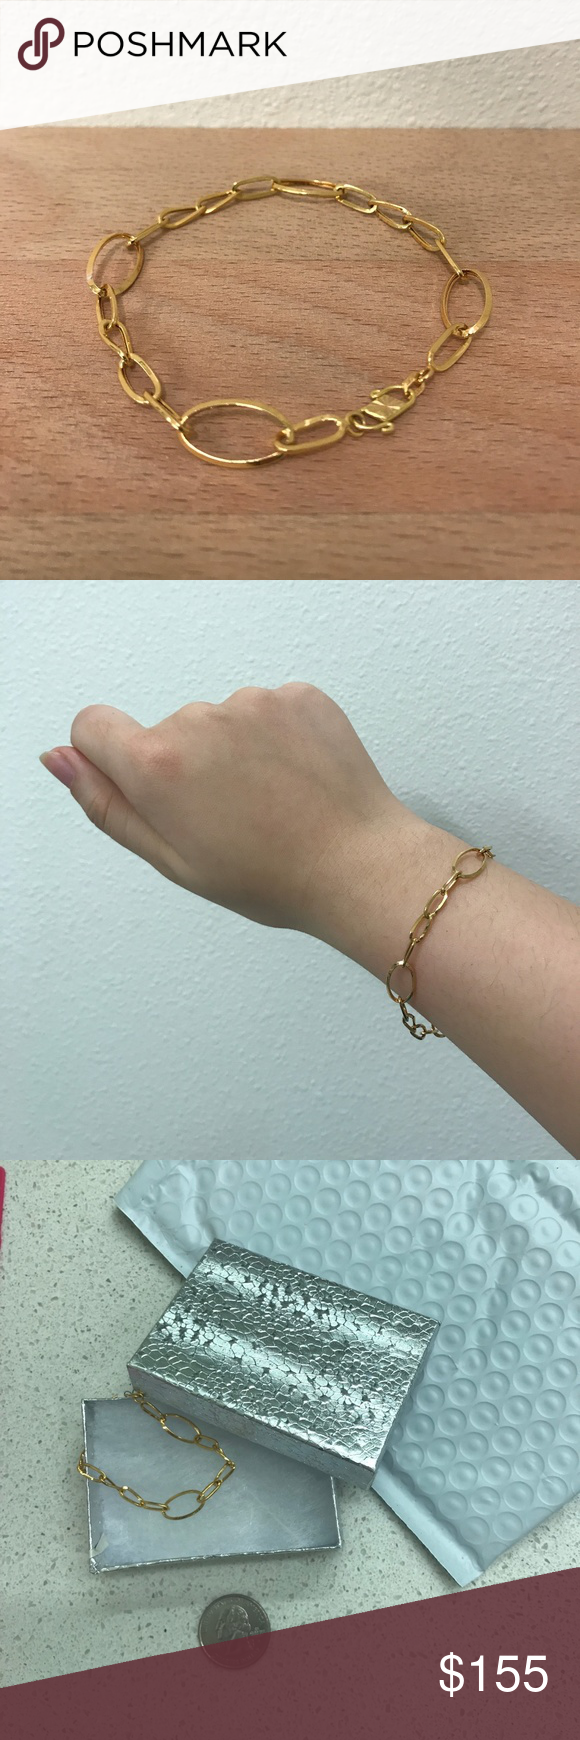 K gold large long and short chain bracelet simple and minimal gold